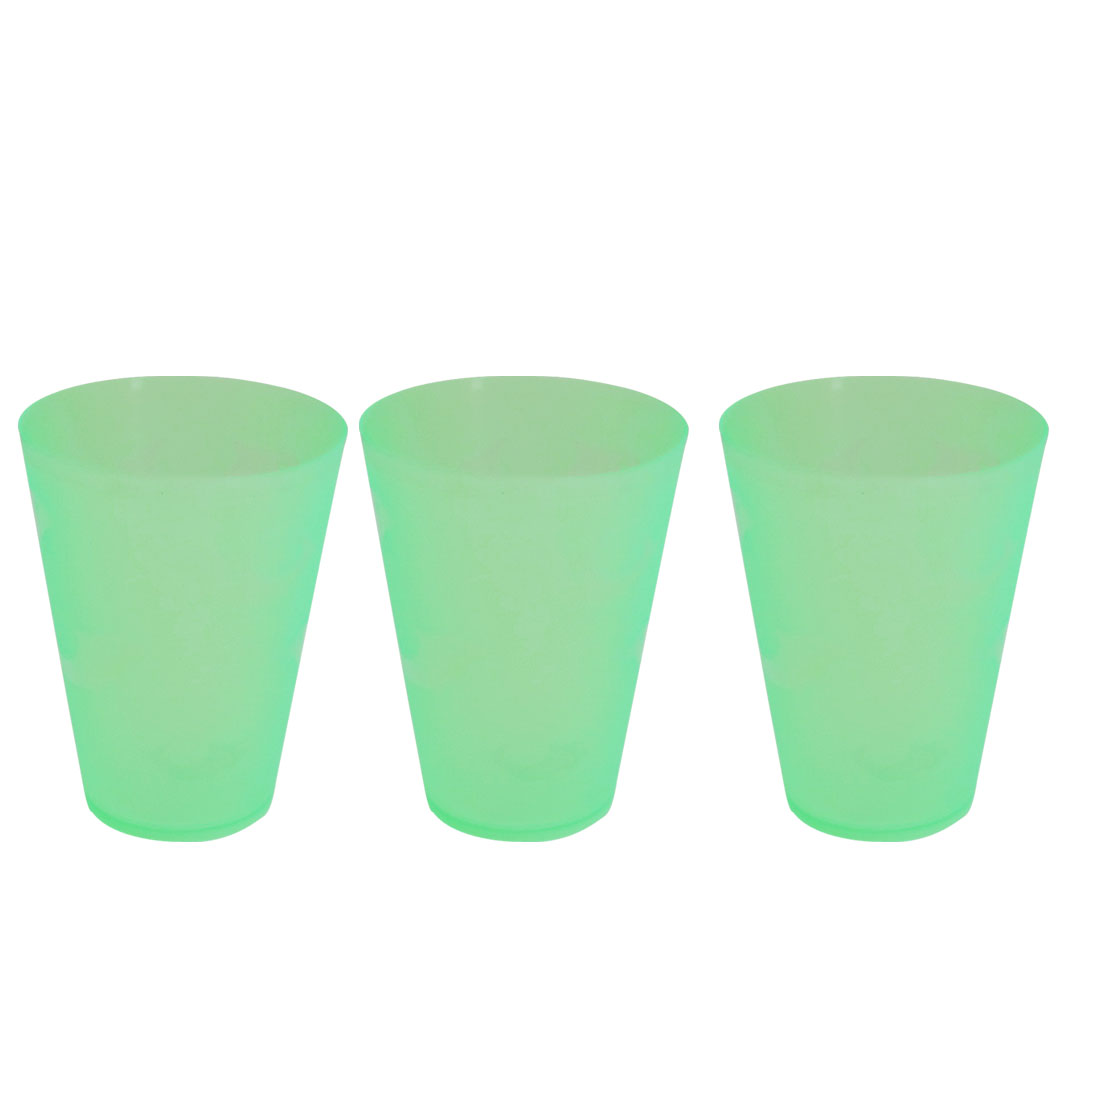 4 Pcs Travel Green Plastic Dolphins Pattern Water Cup Mug